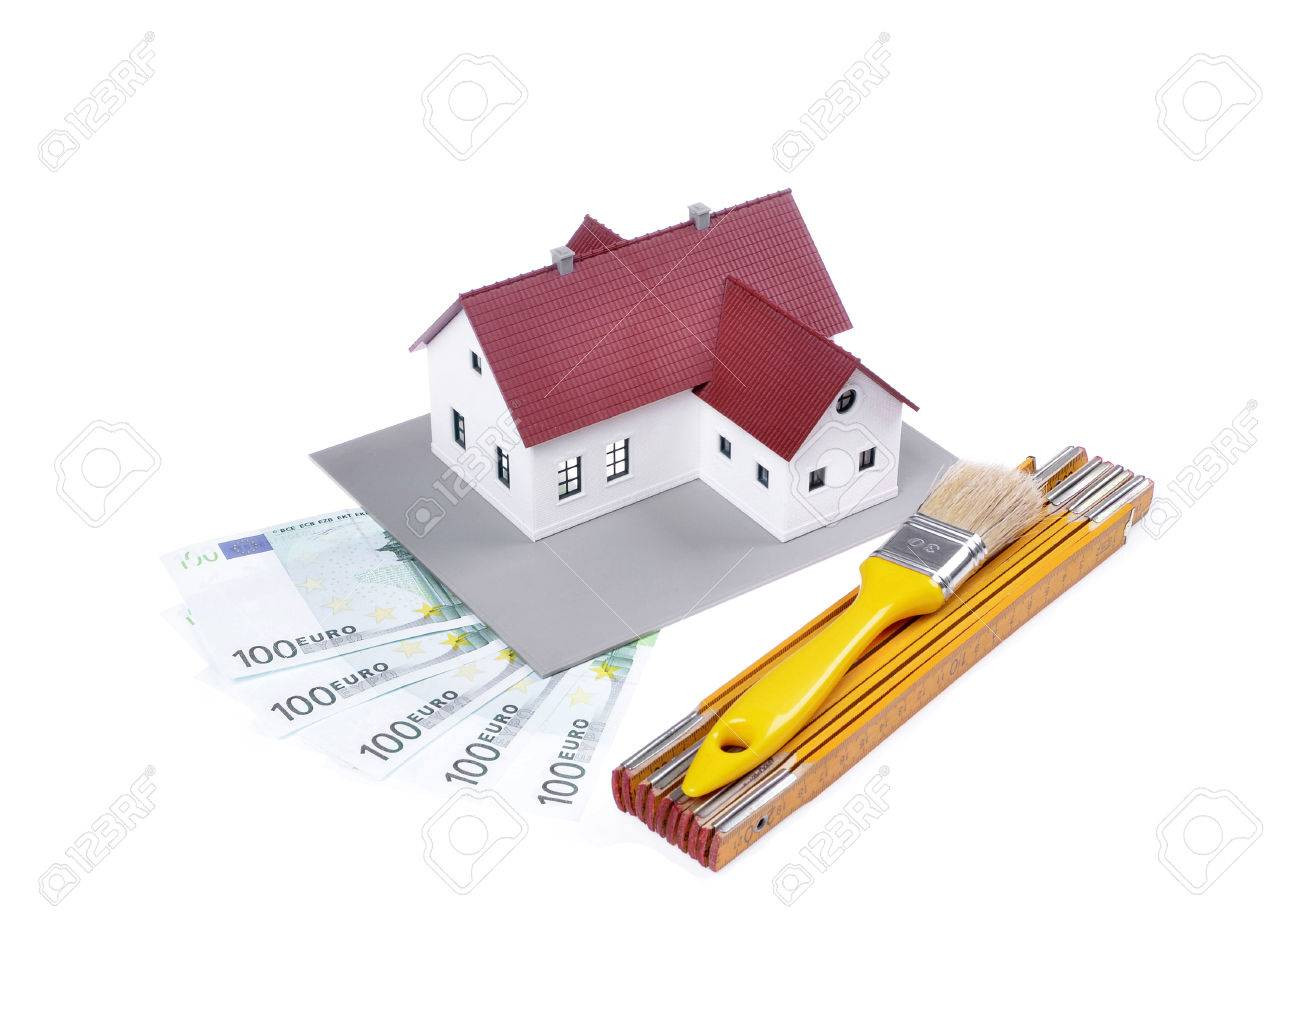 Model House , Construction Plan For House Building, Tools And Banknotes  ,isolated White Background